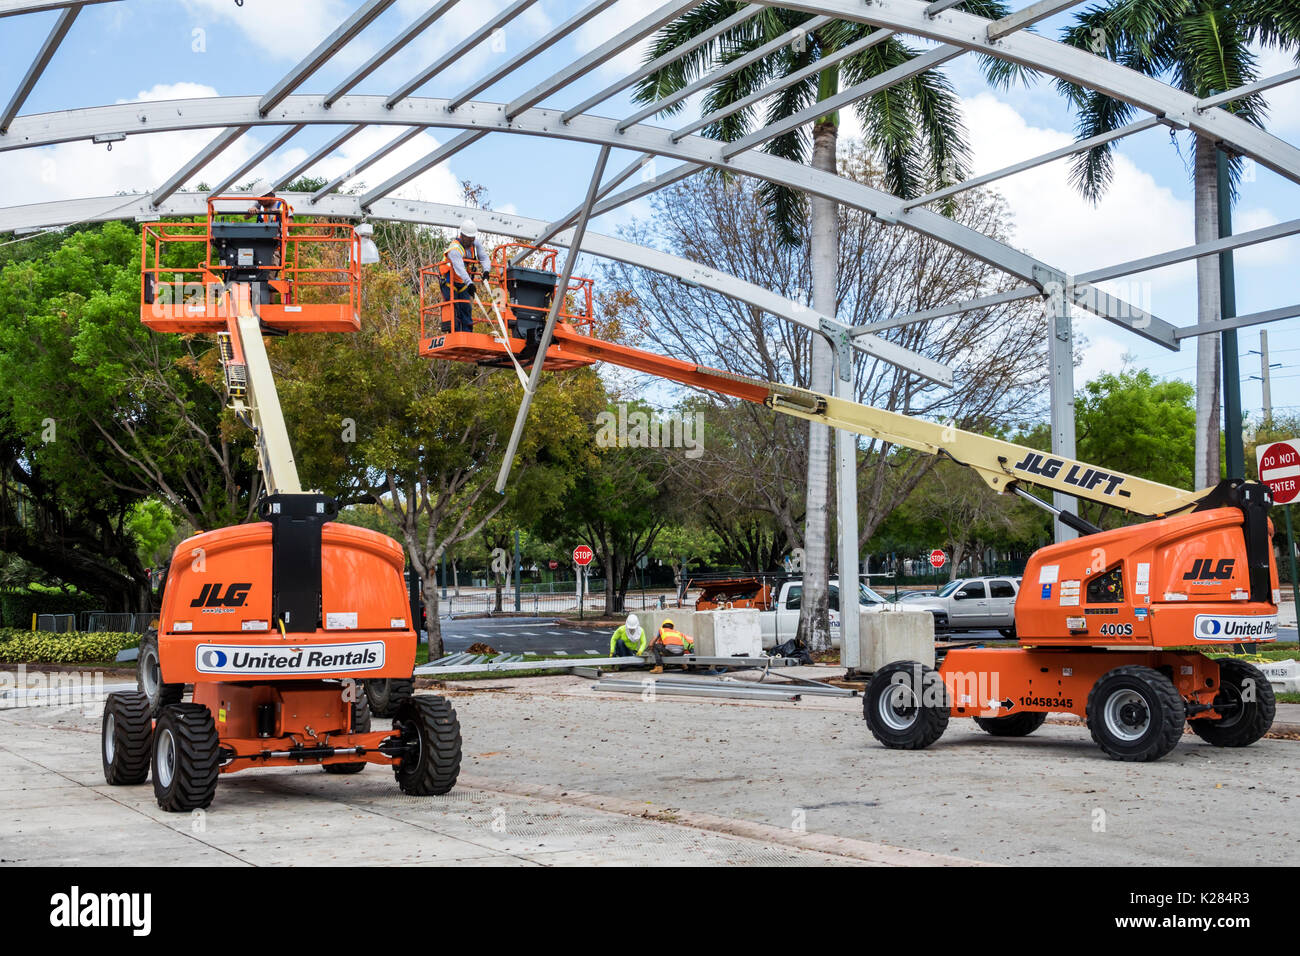 Tent platform stock photos tent platform stock images for Tent platform construction